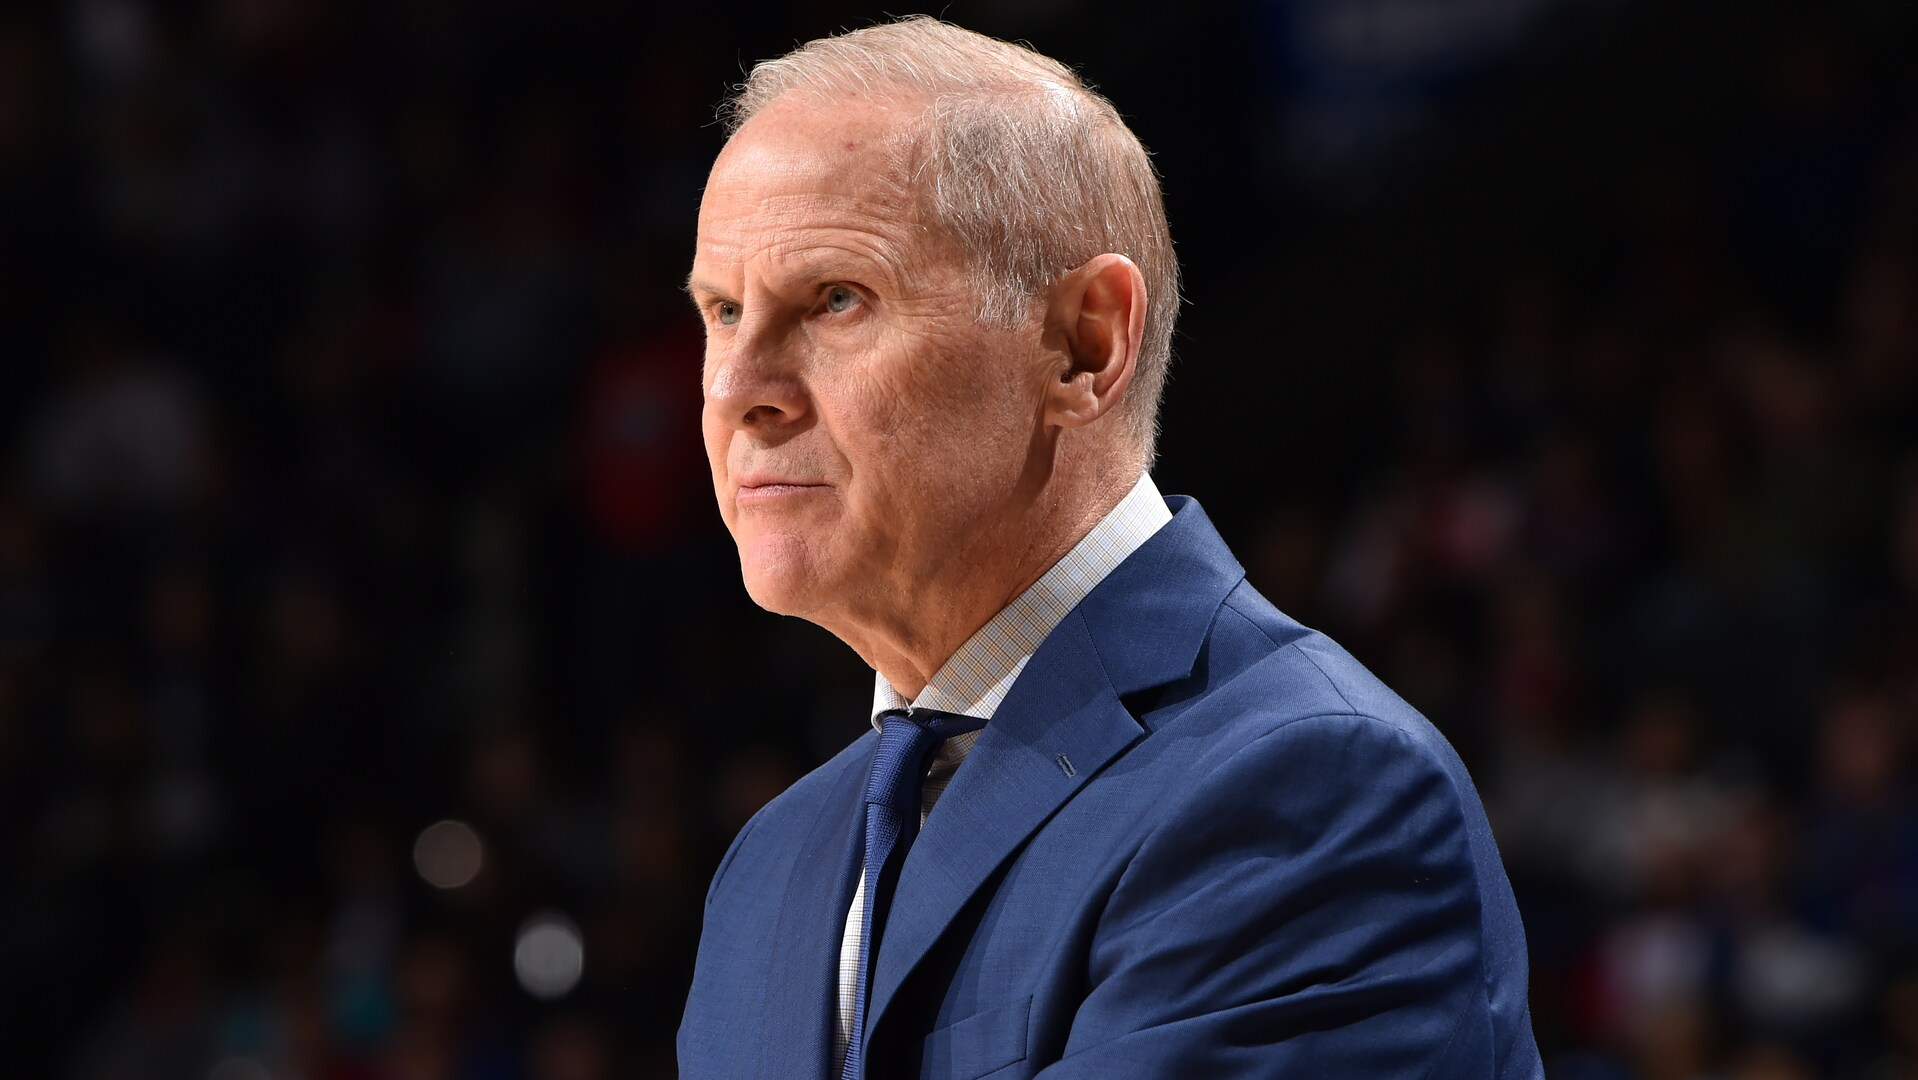 Cavs coach John Beilein says he apologized for 'thugs' comment